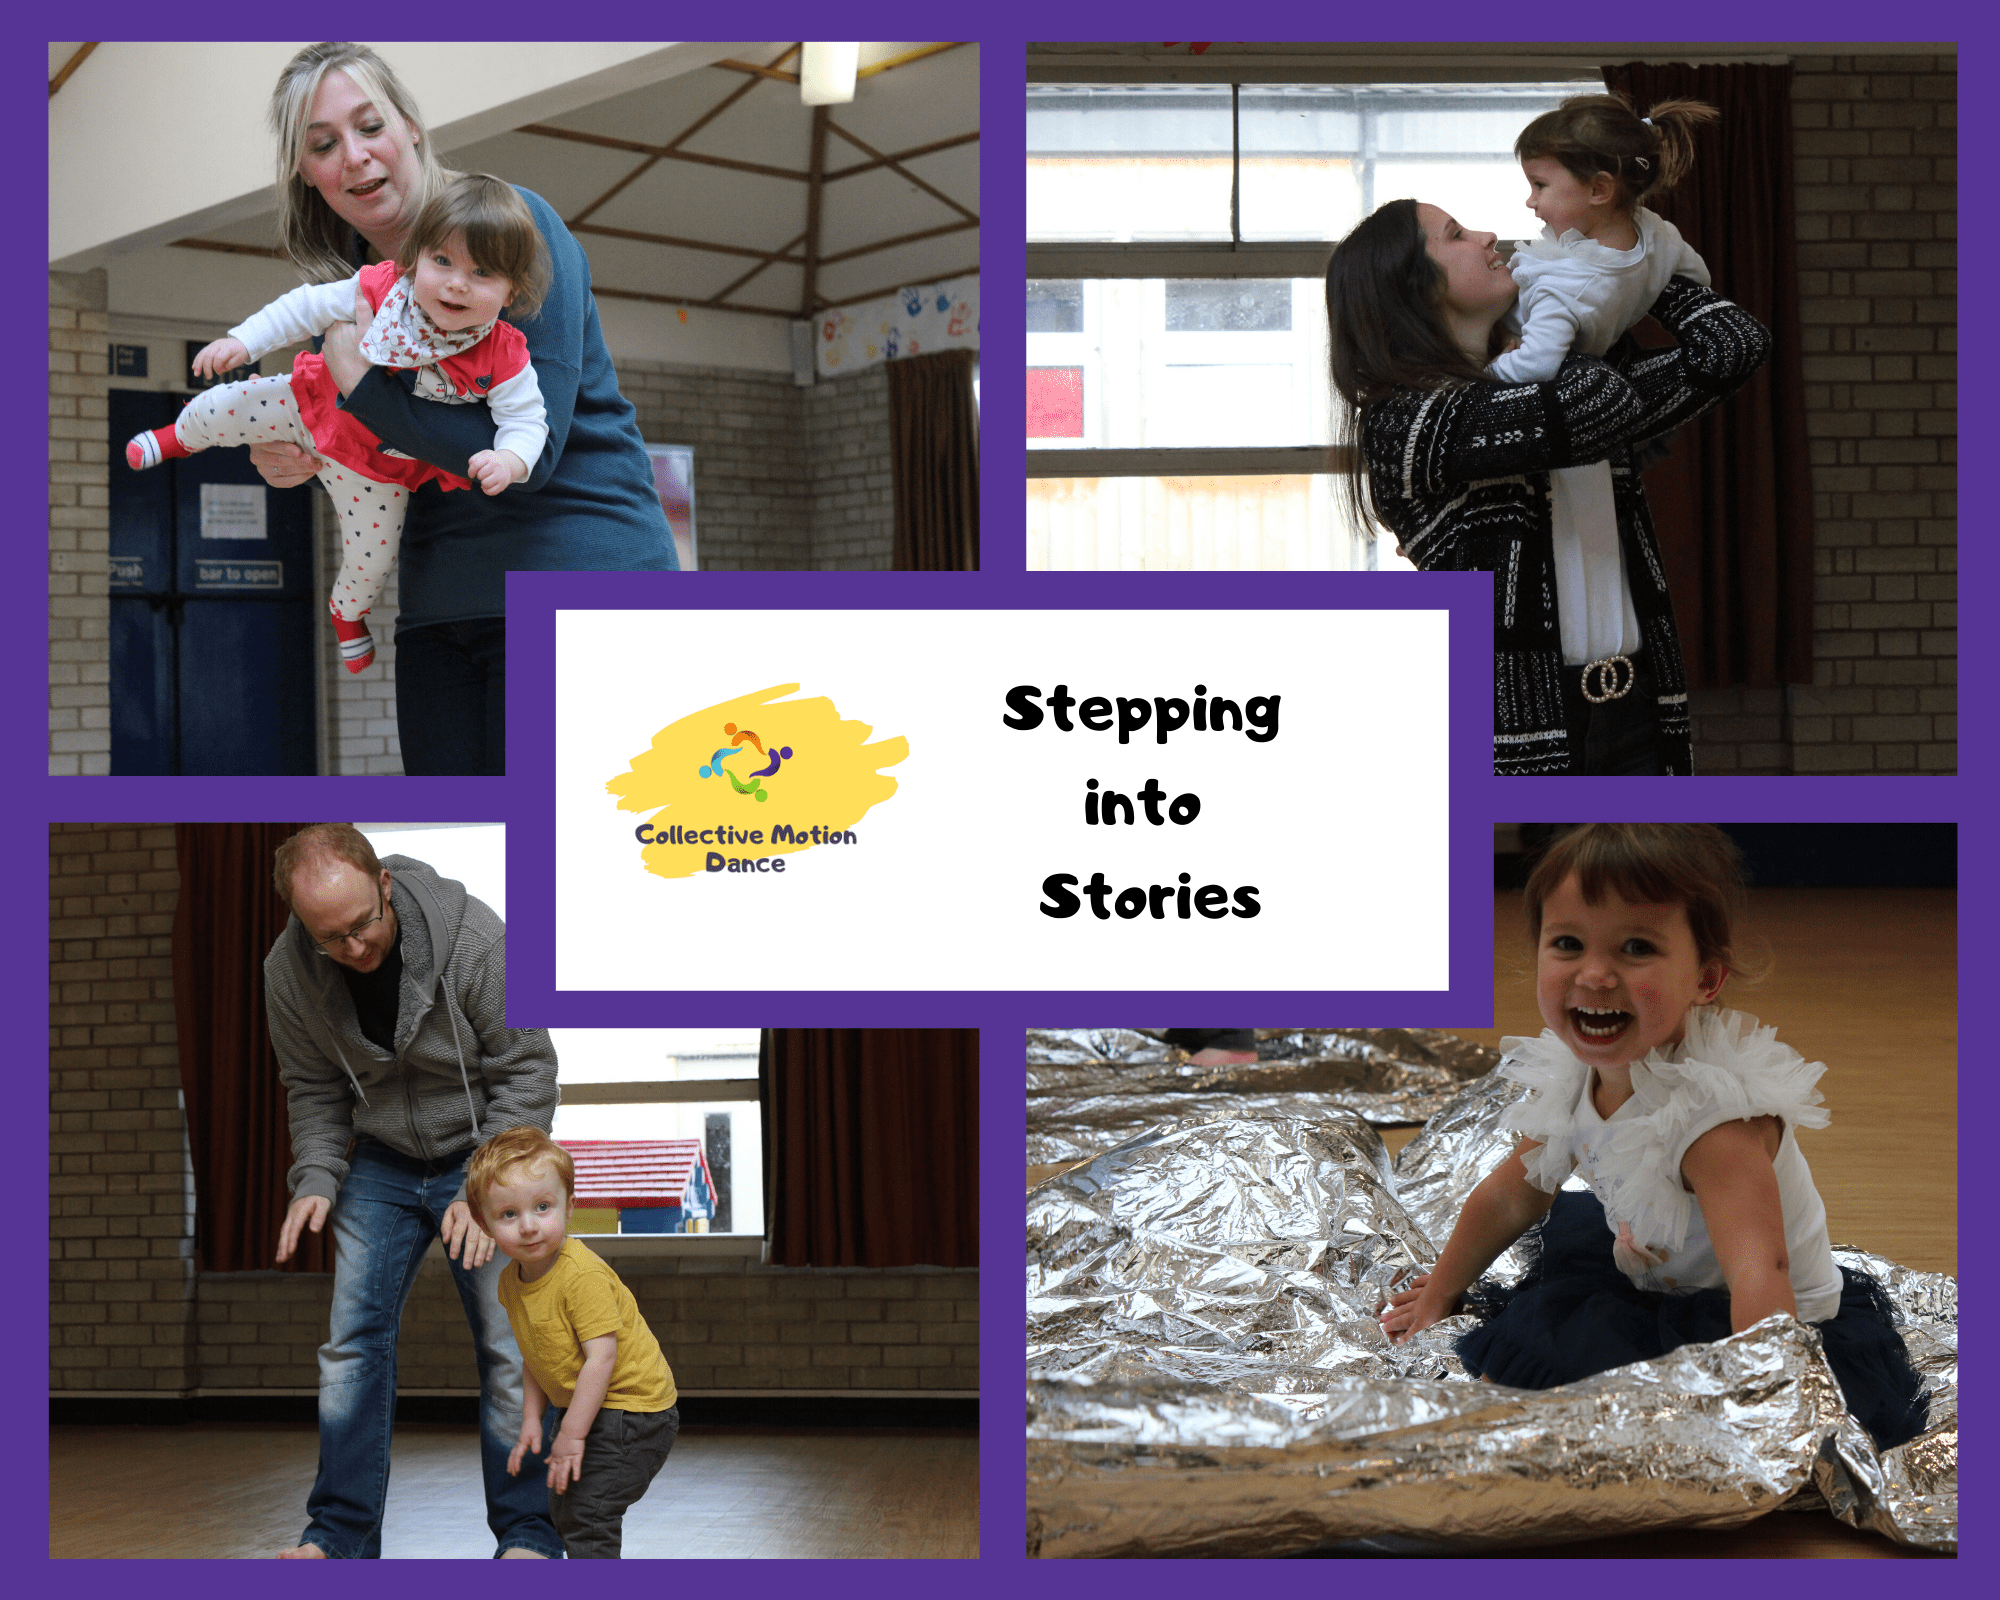 Dance and Storytelling Classes for Toddlers and Pre-School Children